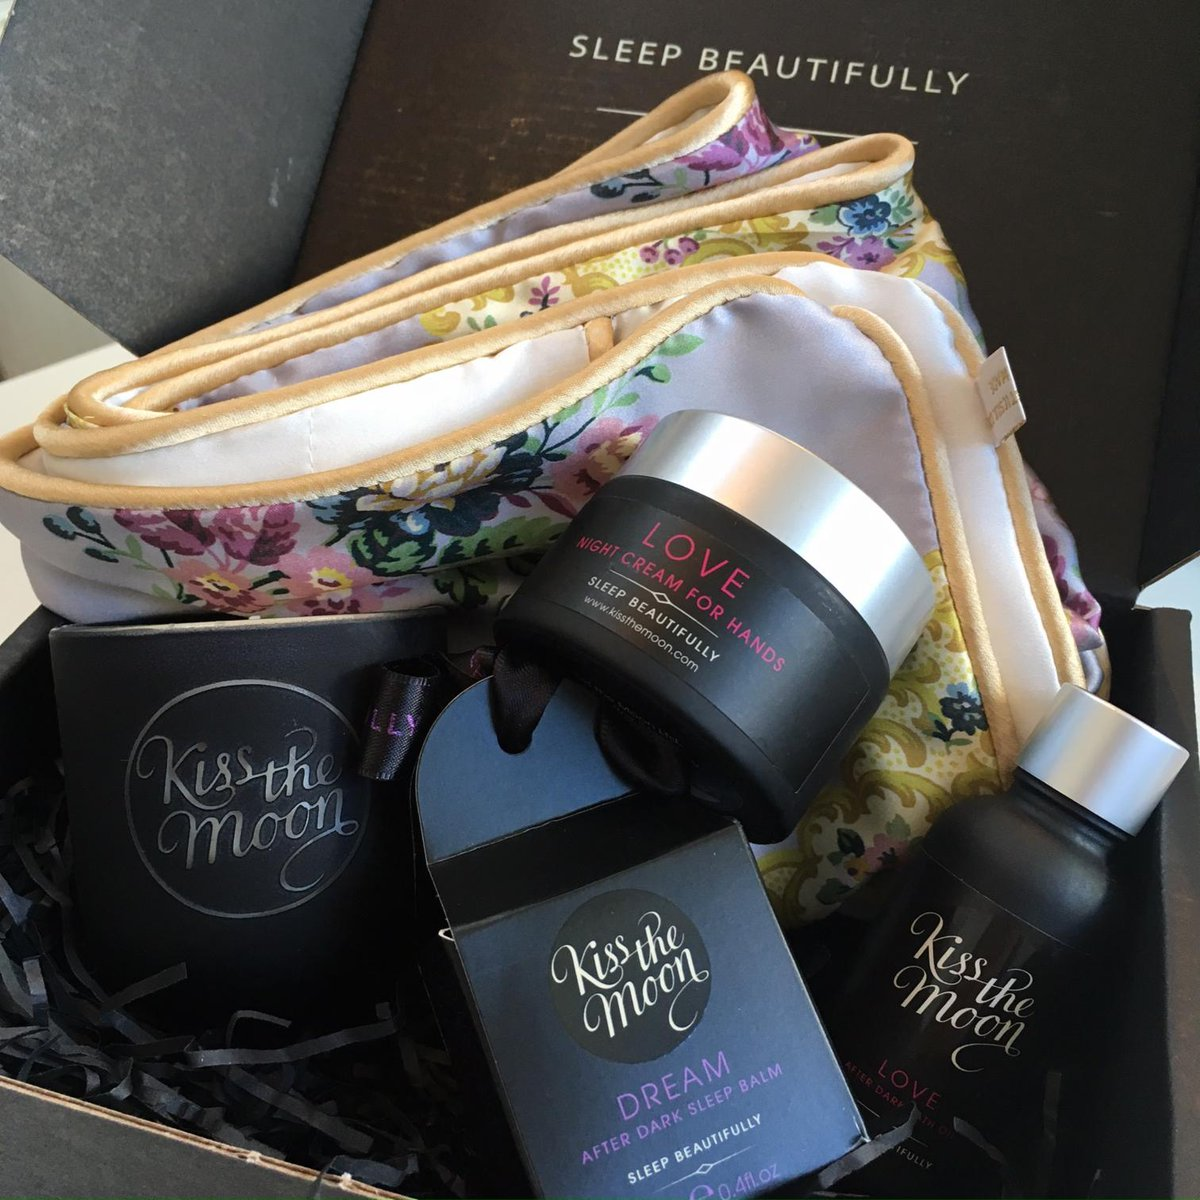 Celebrate #Worldsleepday with us and enter to #WIN a FLORUS LIBERTY PRINT MULBERRY SILK PILLOWCASE from @holisticsilk and from @kissthemoonxx a PEACE candle, a DREAM sleepbalm, a LOVE hand cream and bath oil.  #Like #Follow #Tag #RT both. #WorldSleep2019 #giveaway Ends 24/03/19<br>http://pic.twitter.com/Hz8TwlM9aZ